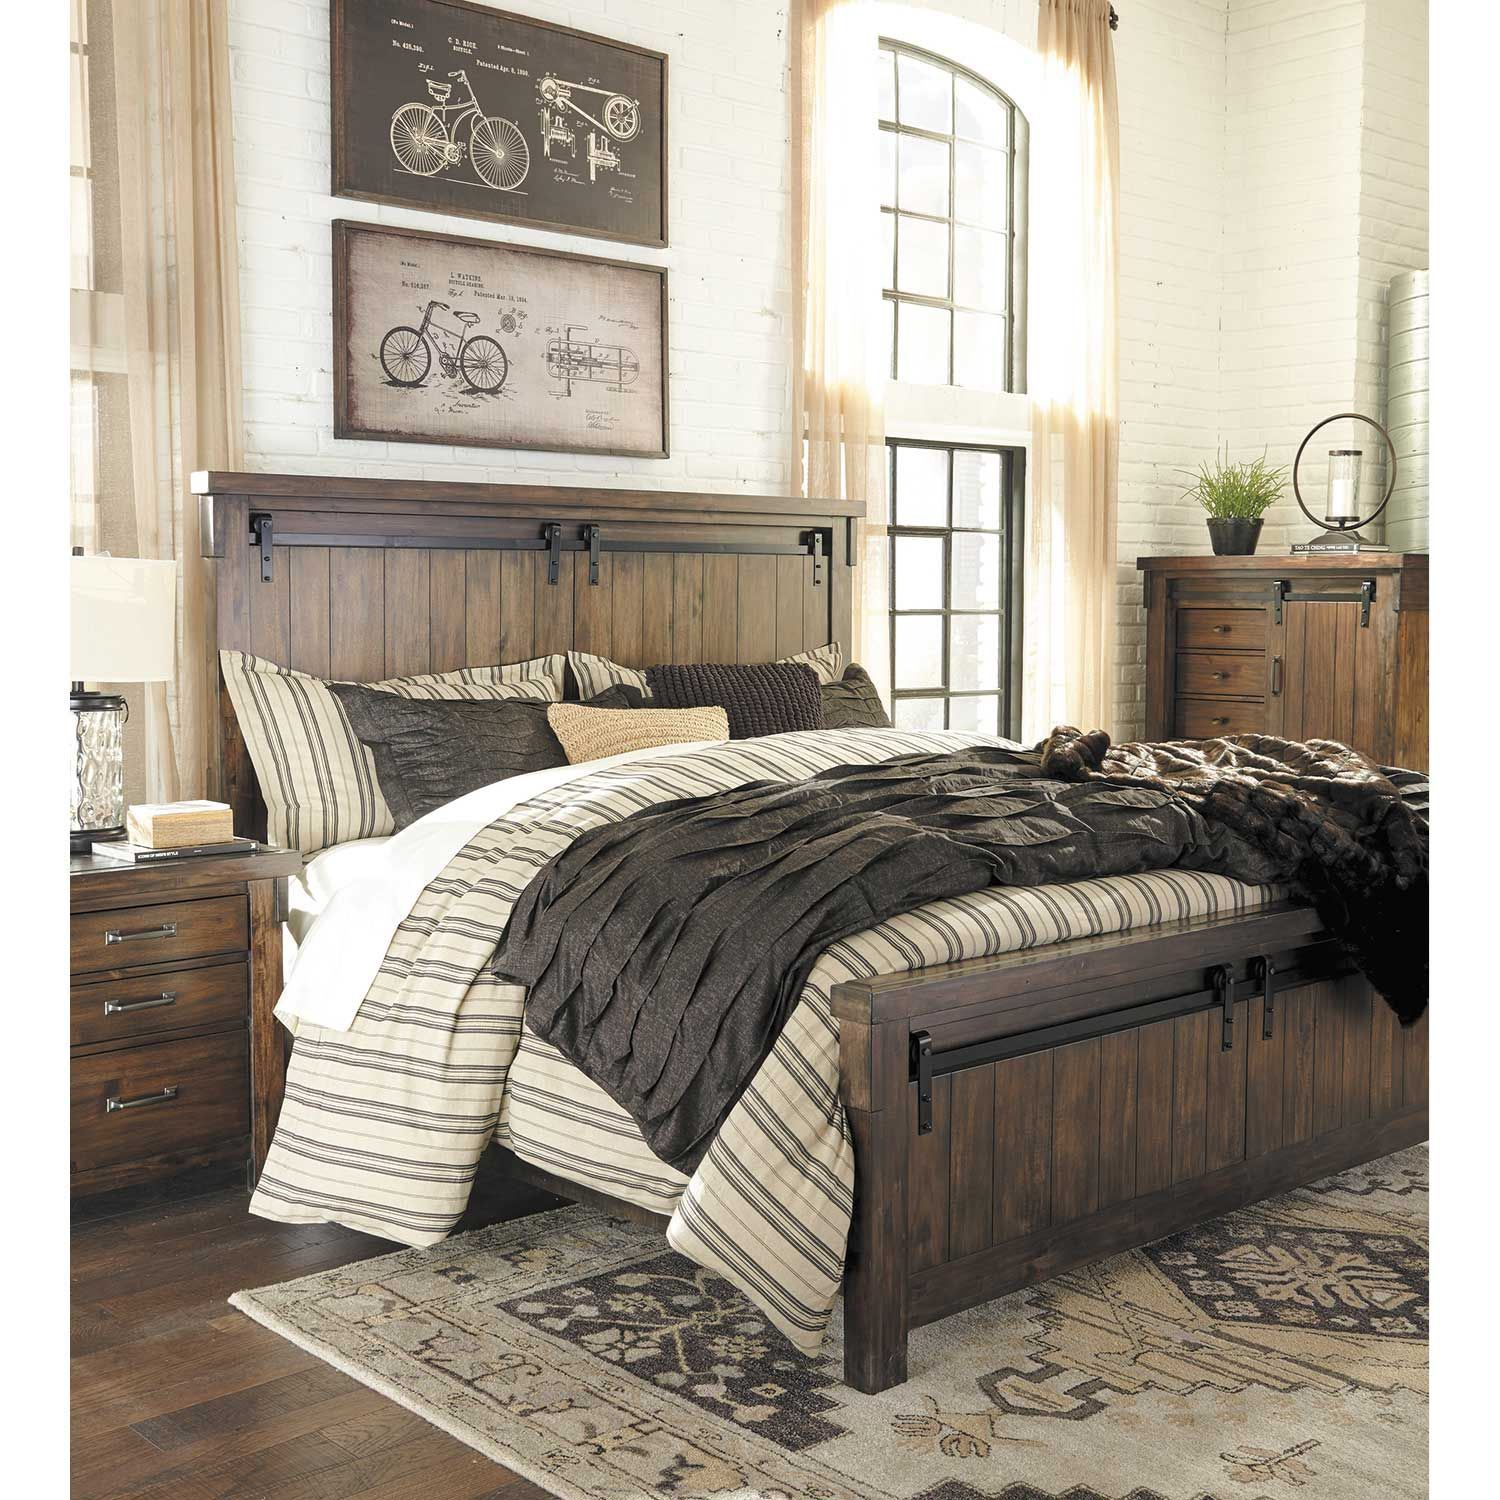 Nearest Ashley Furniture Store: Lakeleigh 5 Piece Bedroom Set